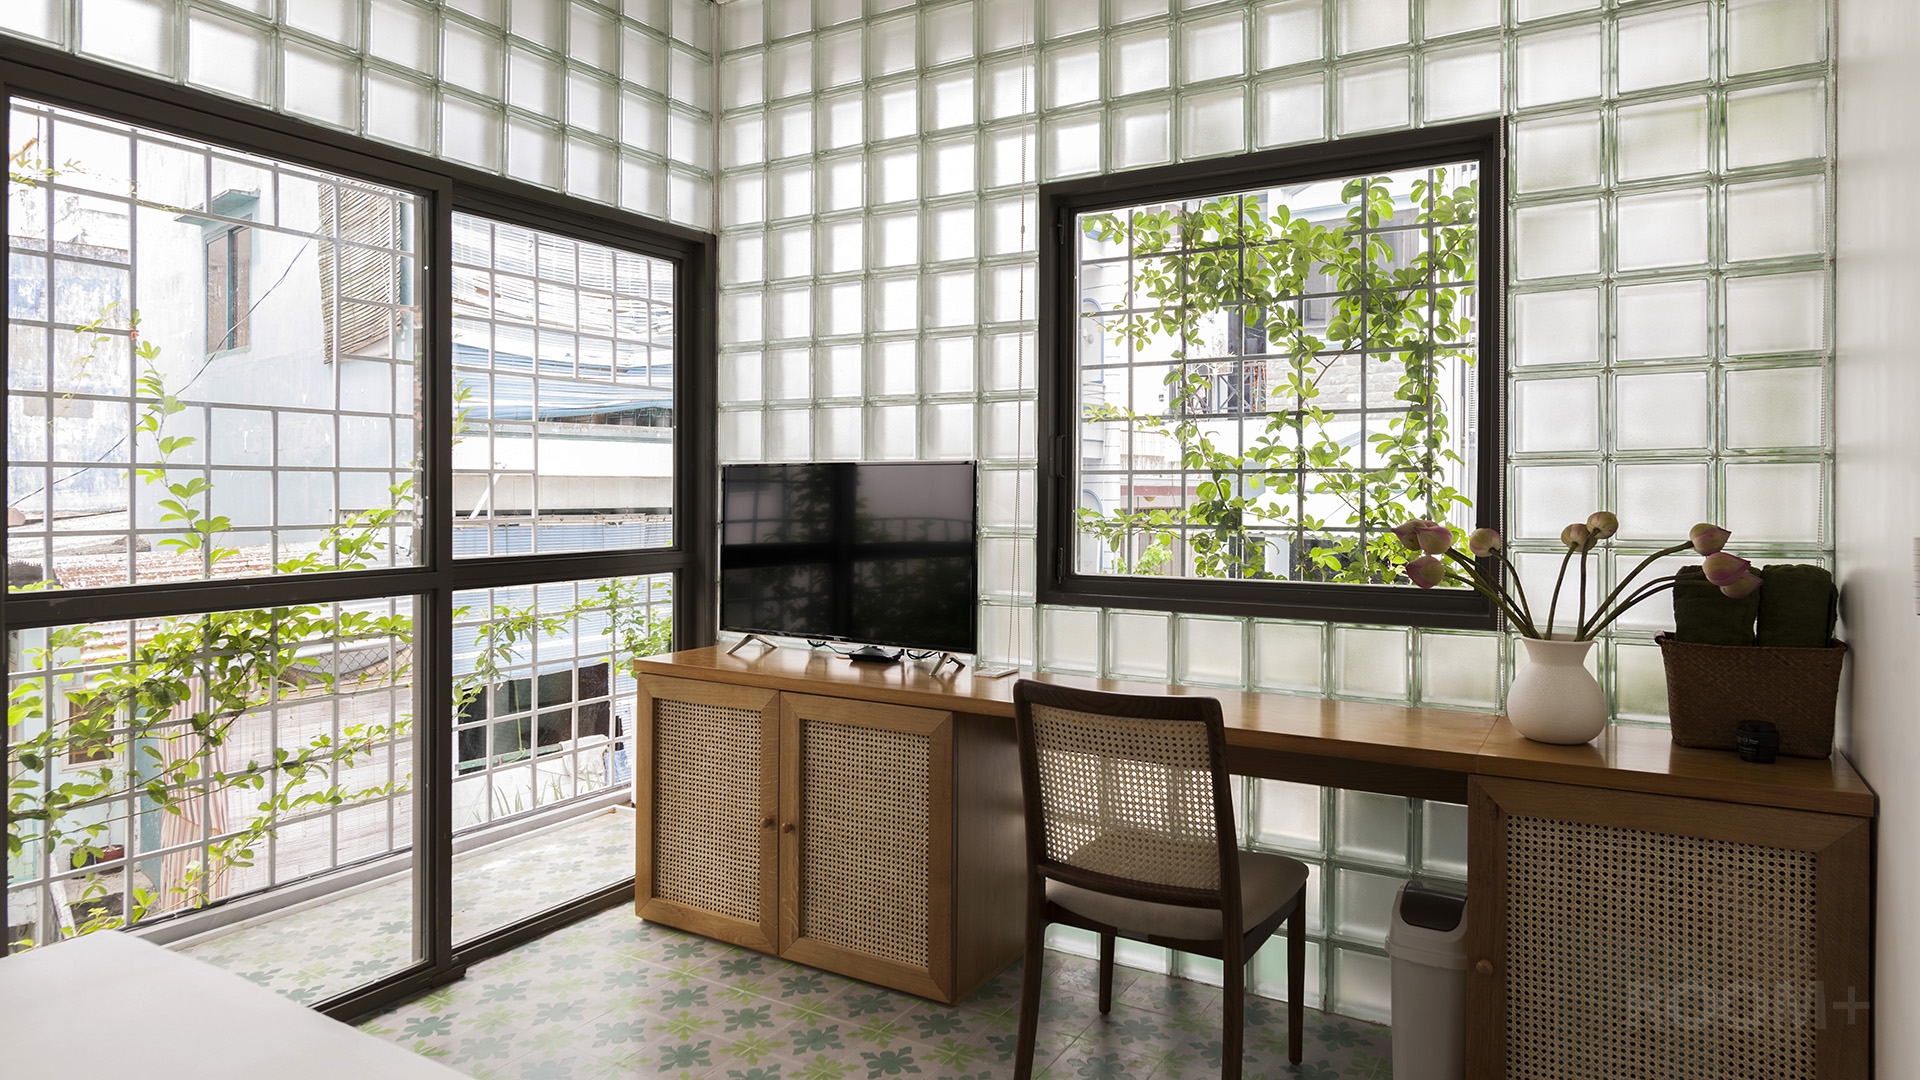 Renovates tiny house in vietnam with glass-block facades